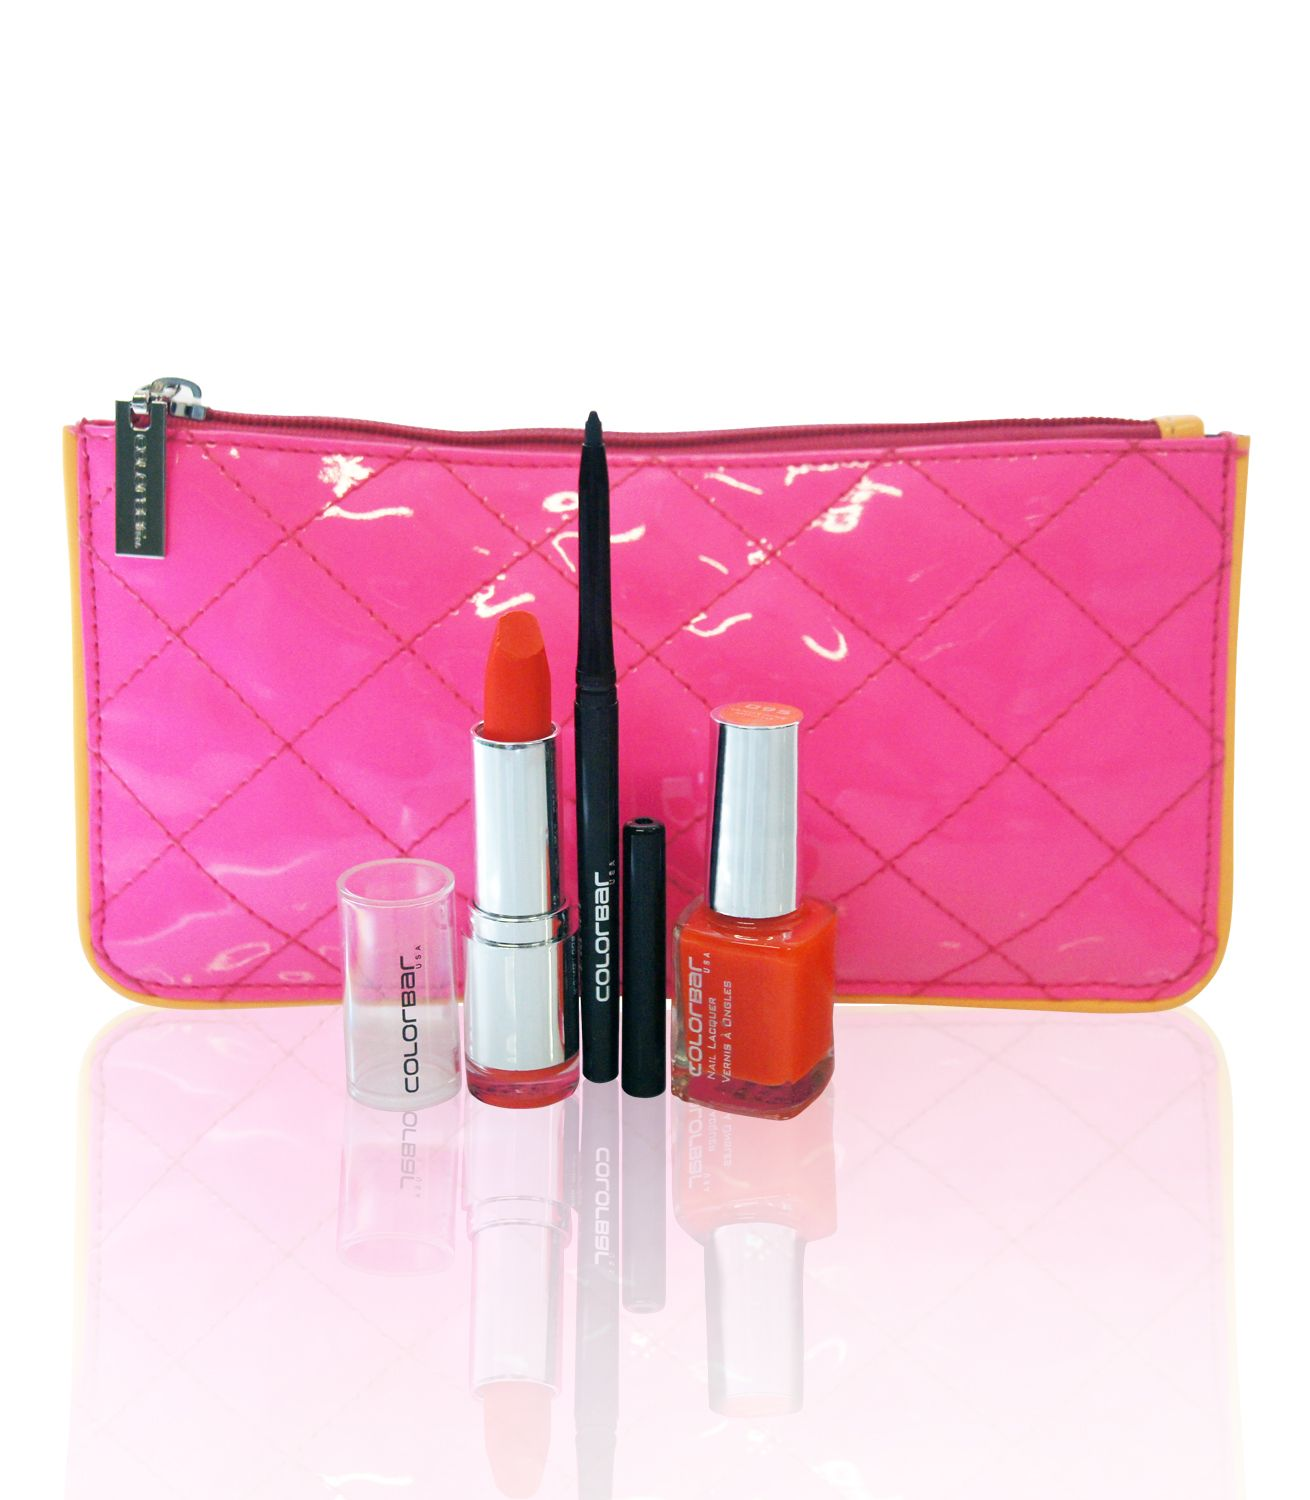 colorbar Orange Sunshine Makeup Kit Makeup kit, Makeup